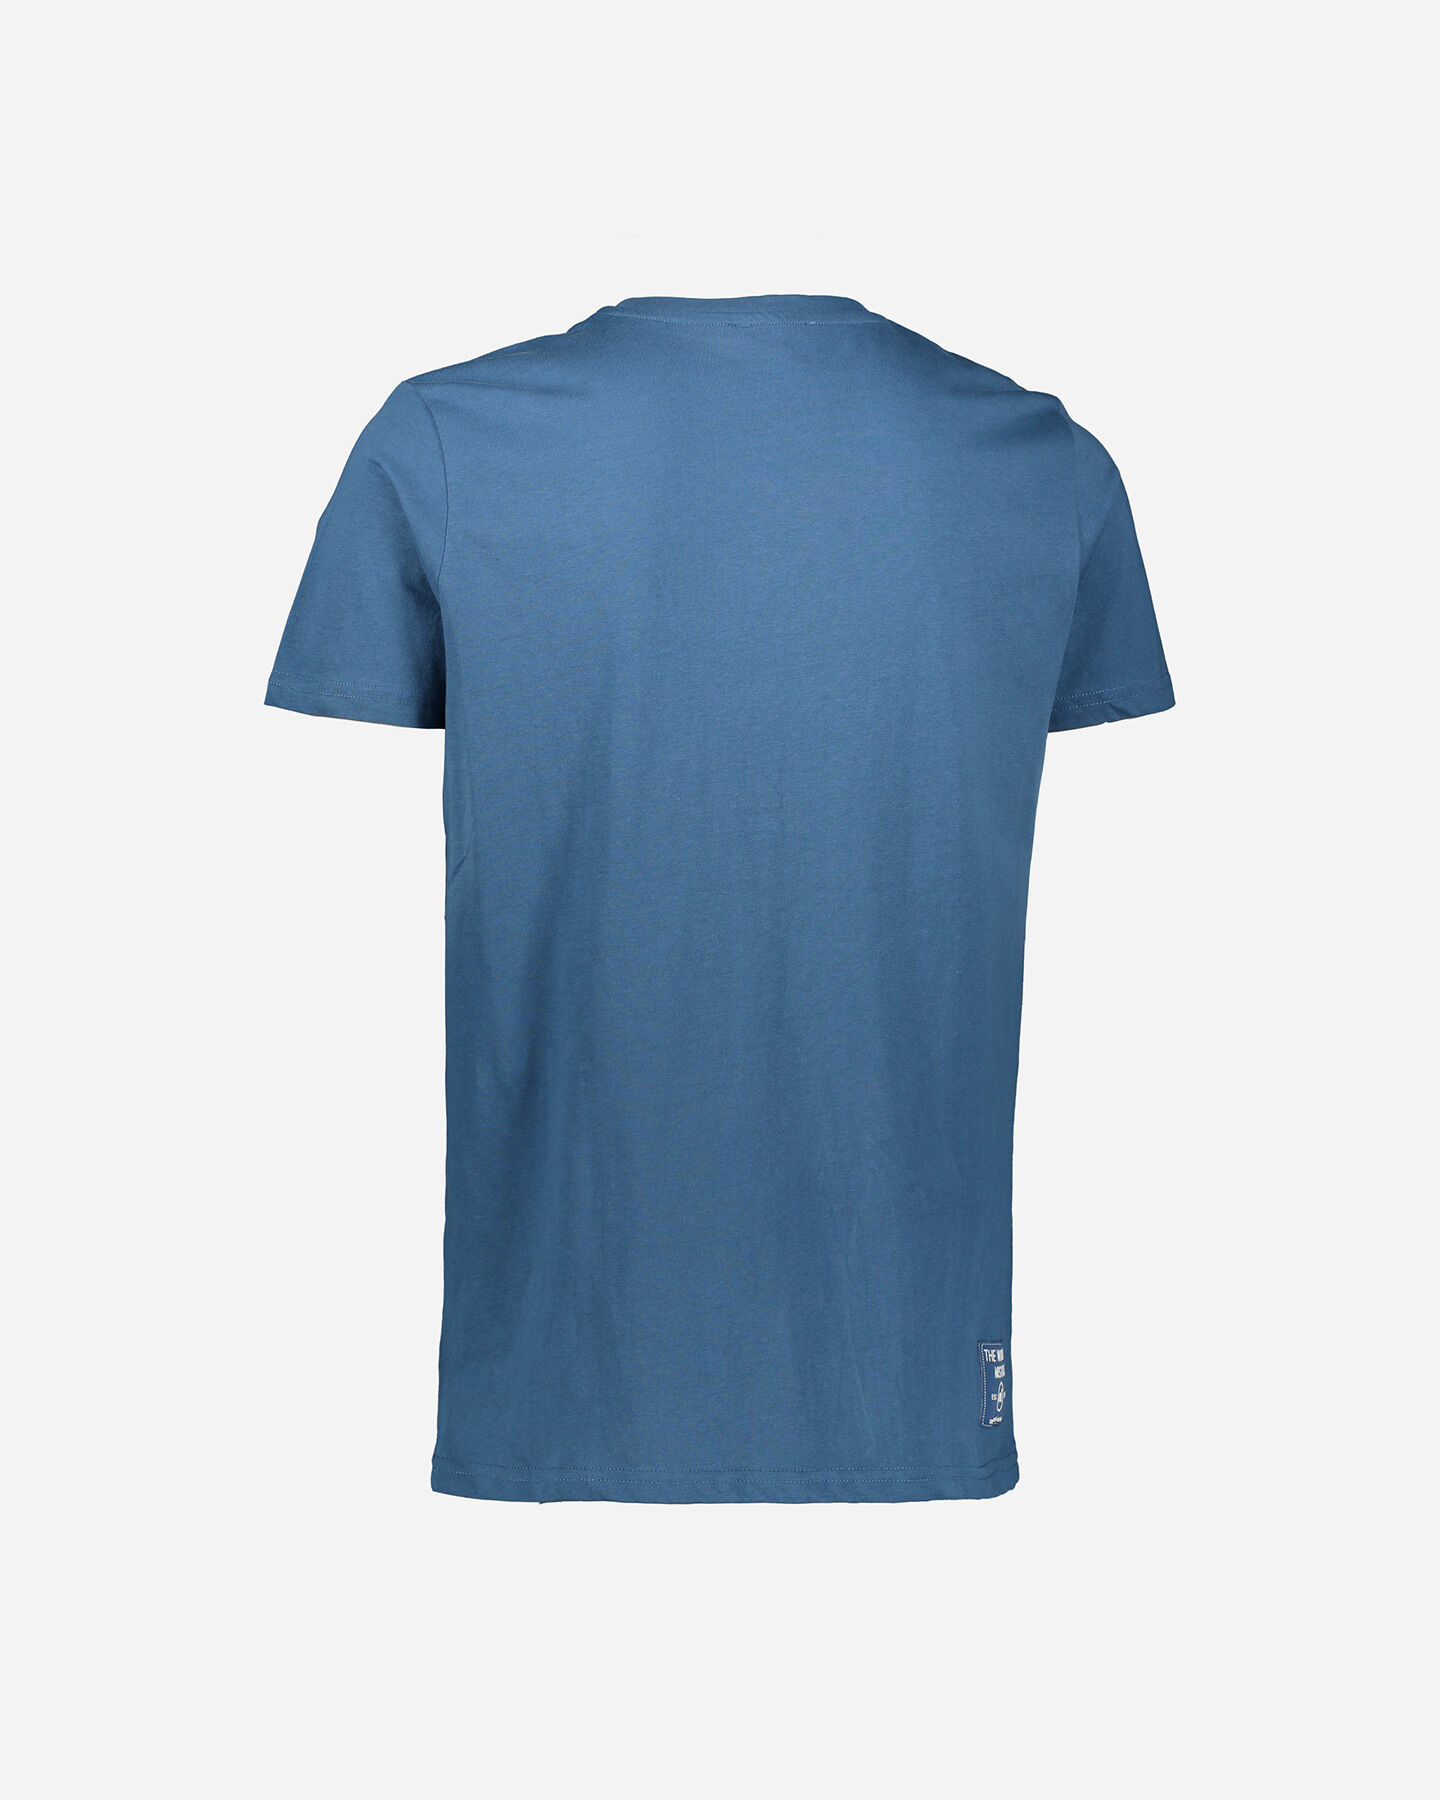 T-Shirt MISTRAL LOGO CENTRAL ST PALM M S4087935 scatto 1